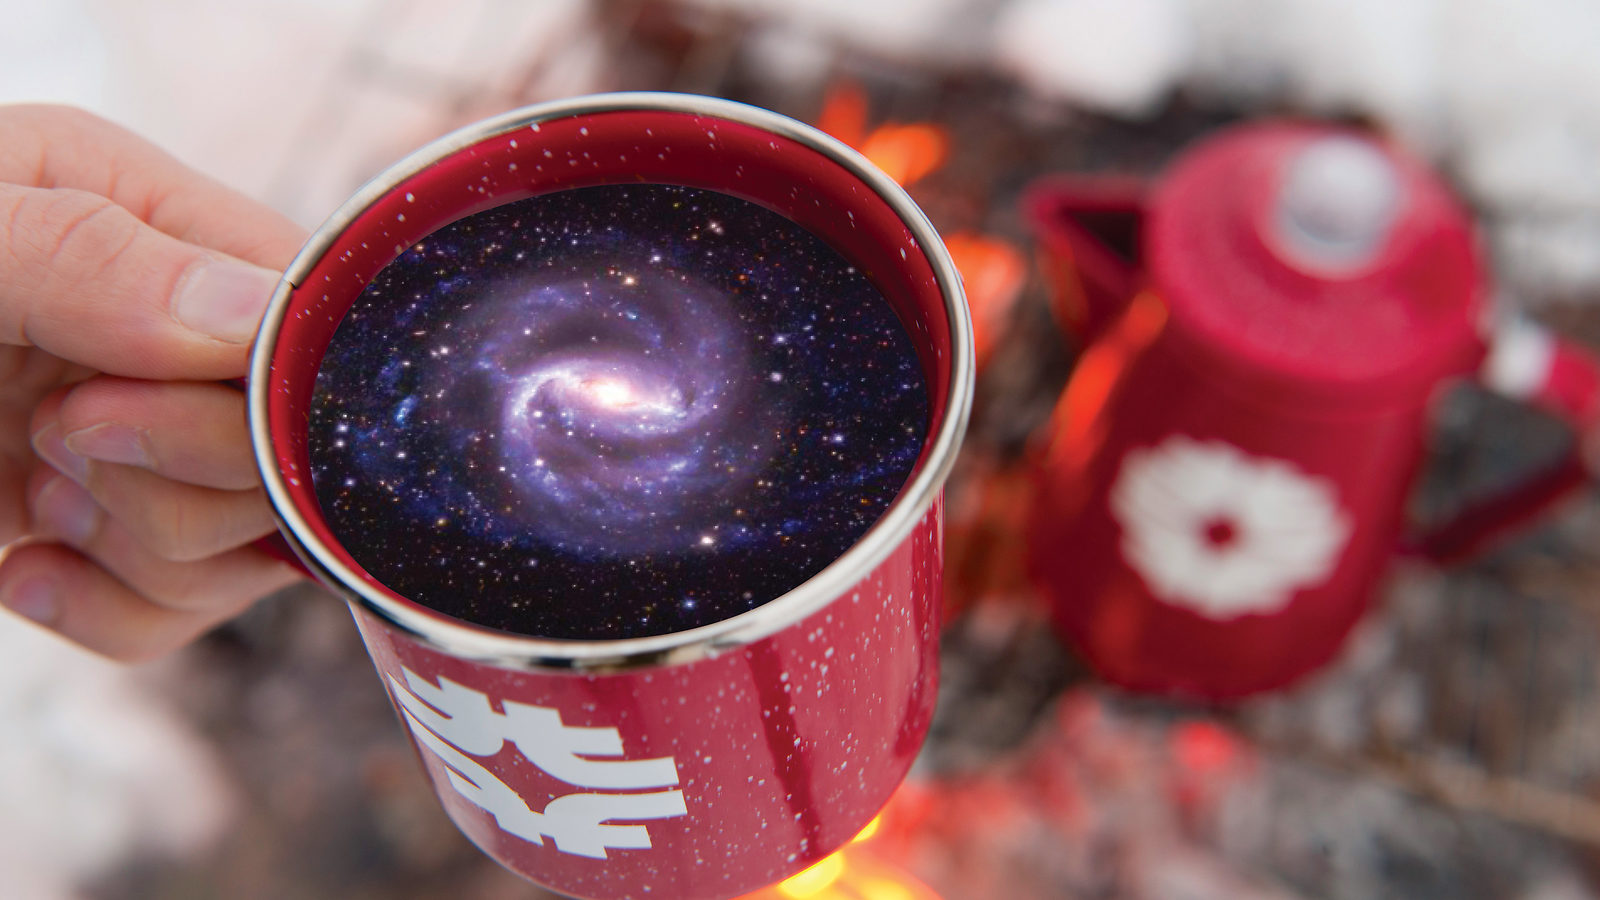 Galaxy coffee cup